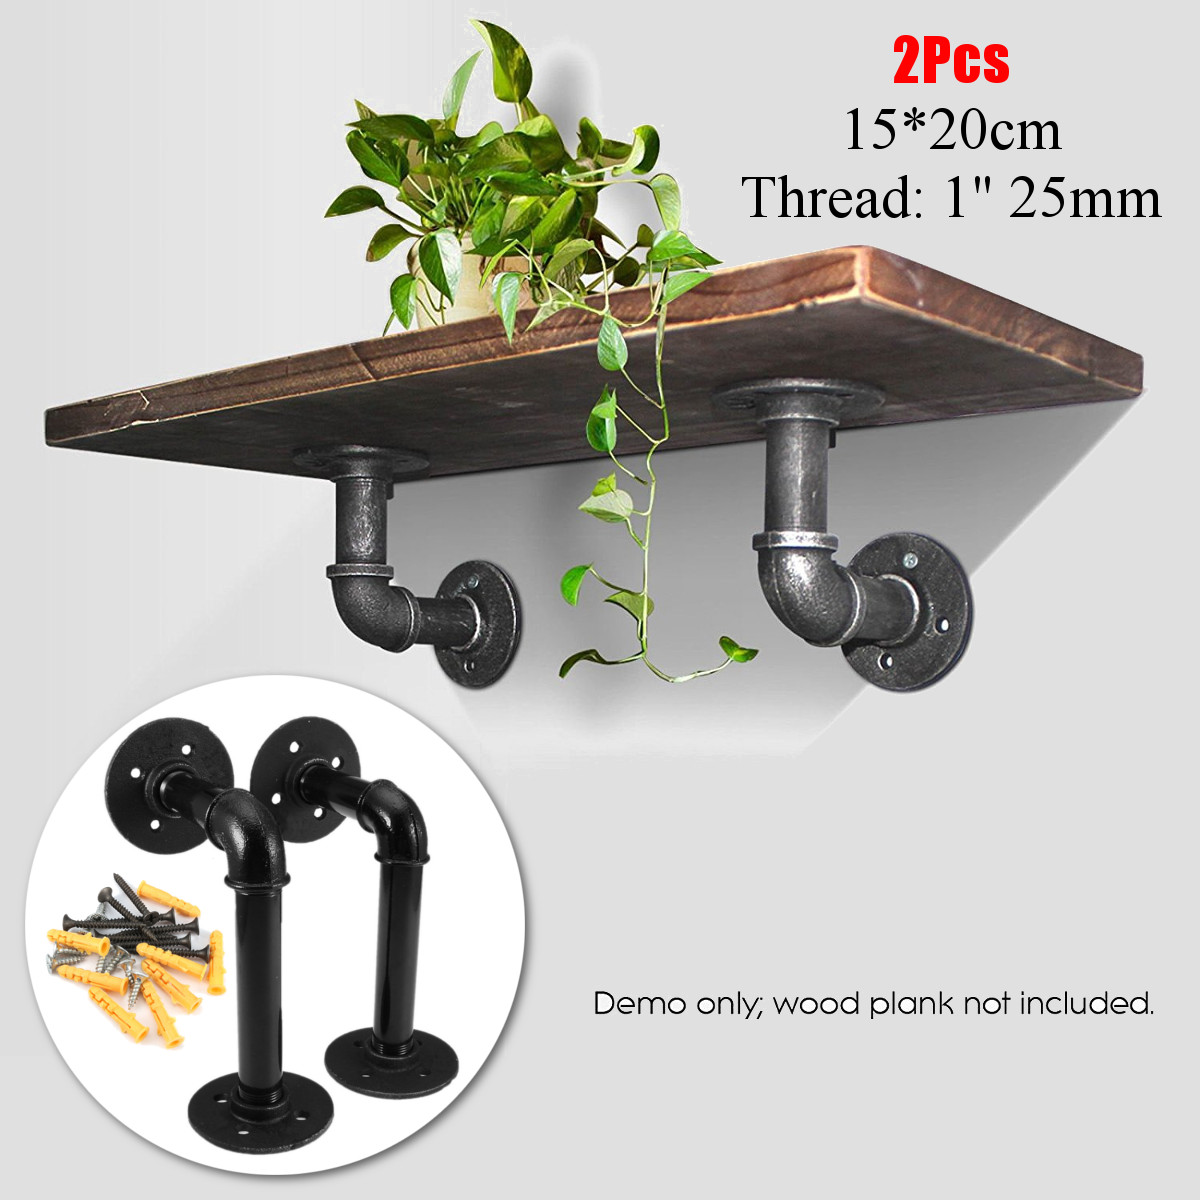 Distinguished More Detailed Inch Vintage Pipe Shelf Bracket Blackindustrial Rustic Inch Vintage Pipe Shelf Bracket Black Industrial Rustic Iron Rustic Kitchen Shelf Brackets Rustic Shelf Bracket Ideas houzz-03 Rustic Shelf Brackets